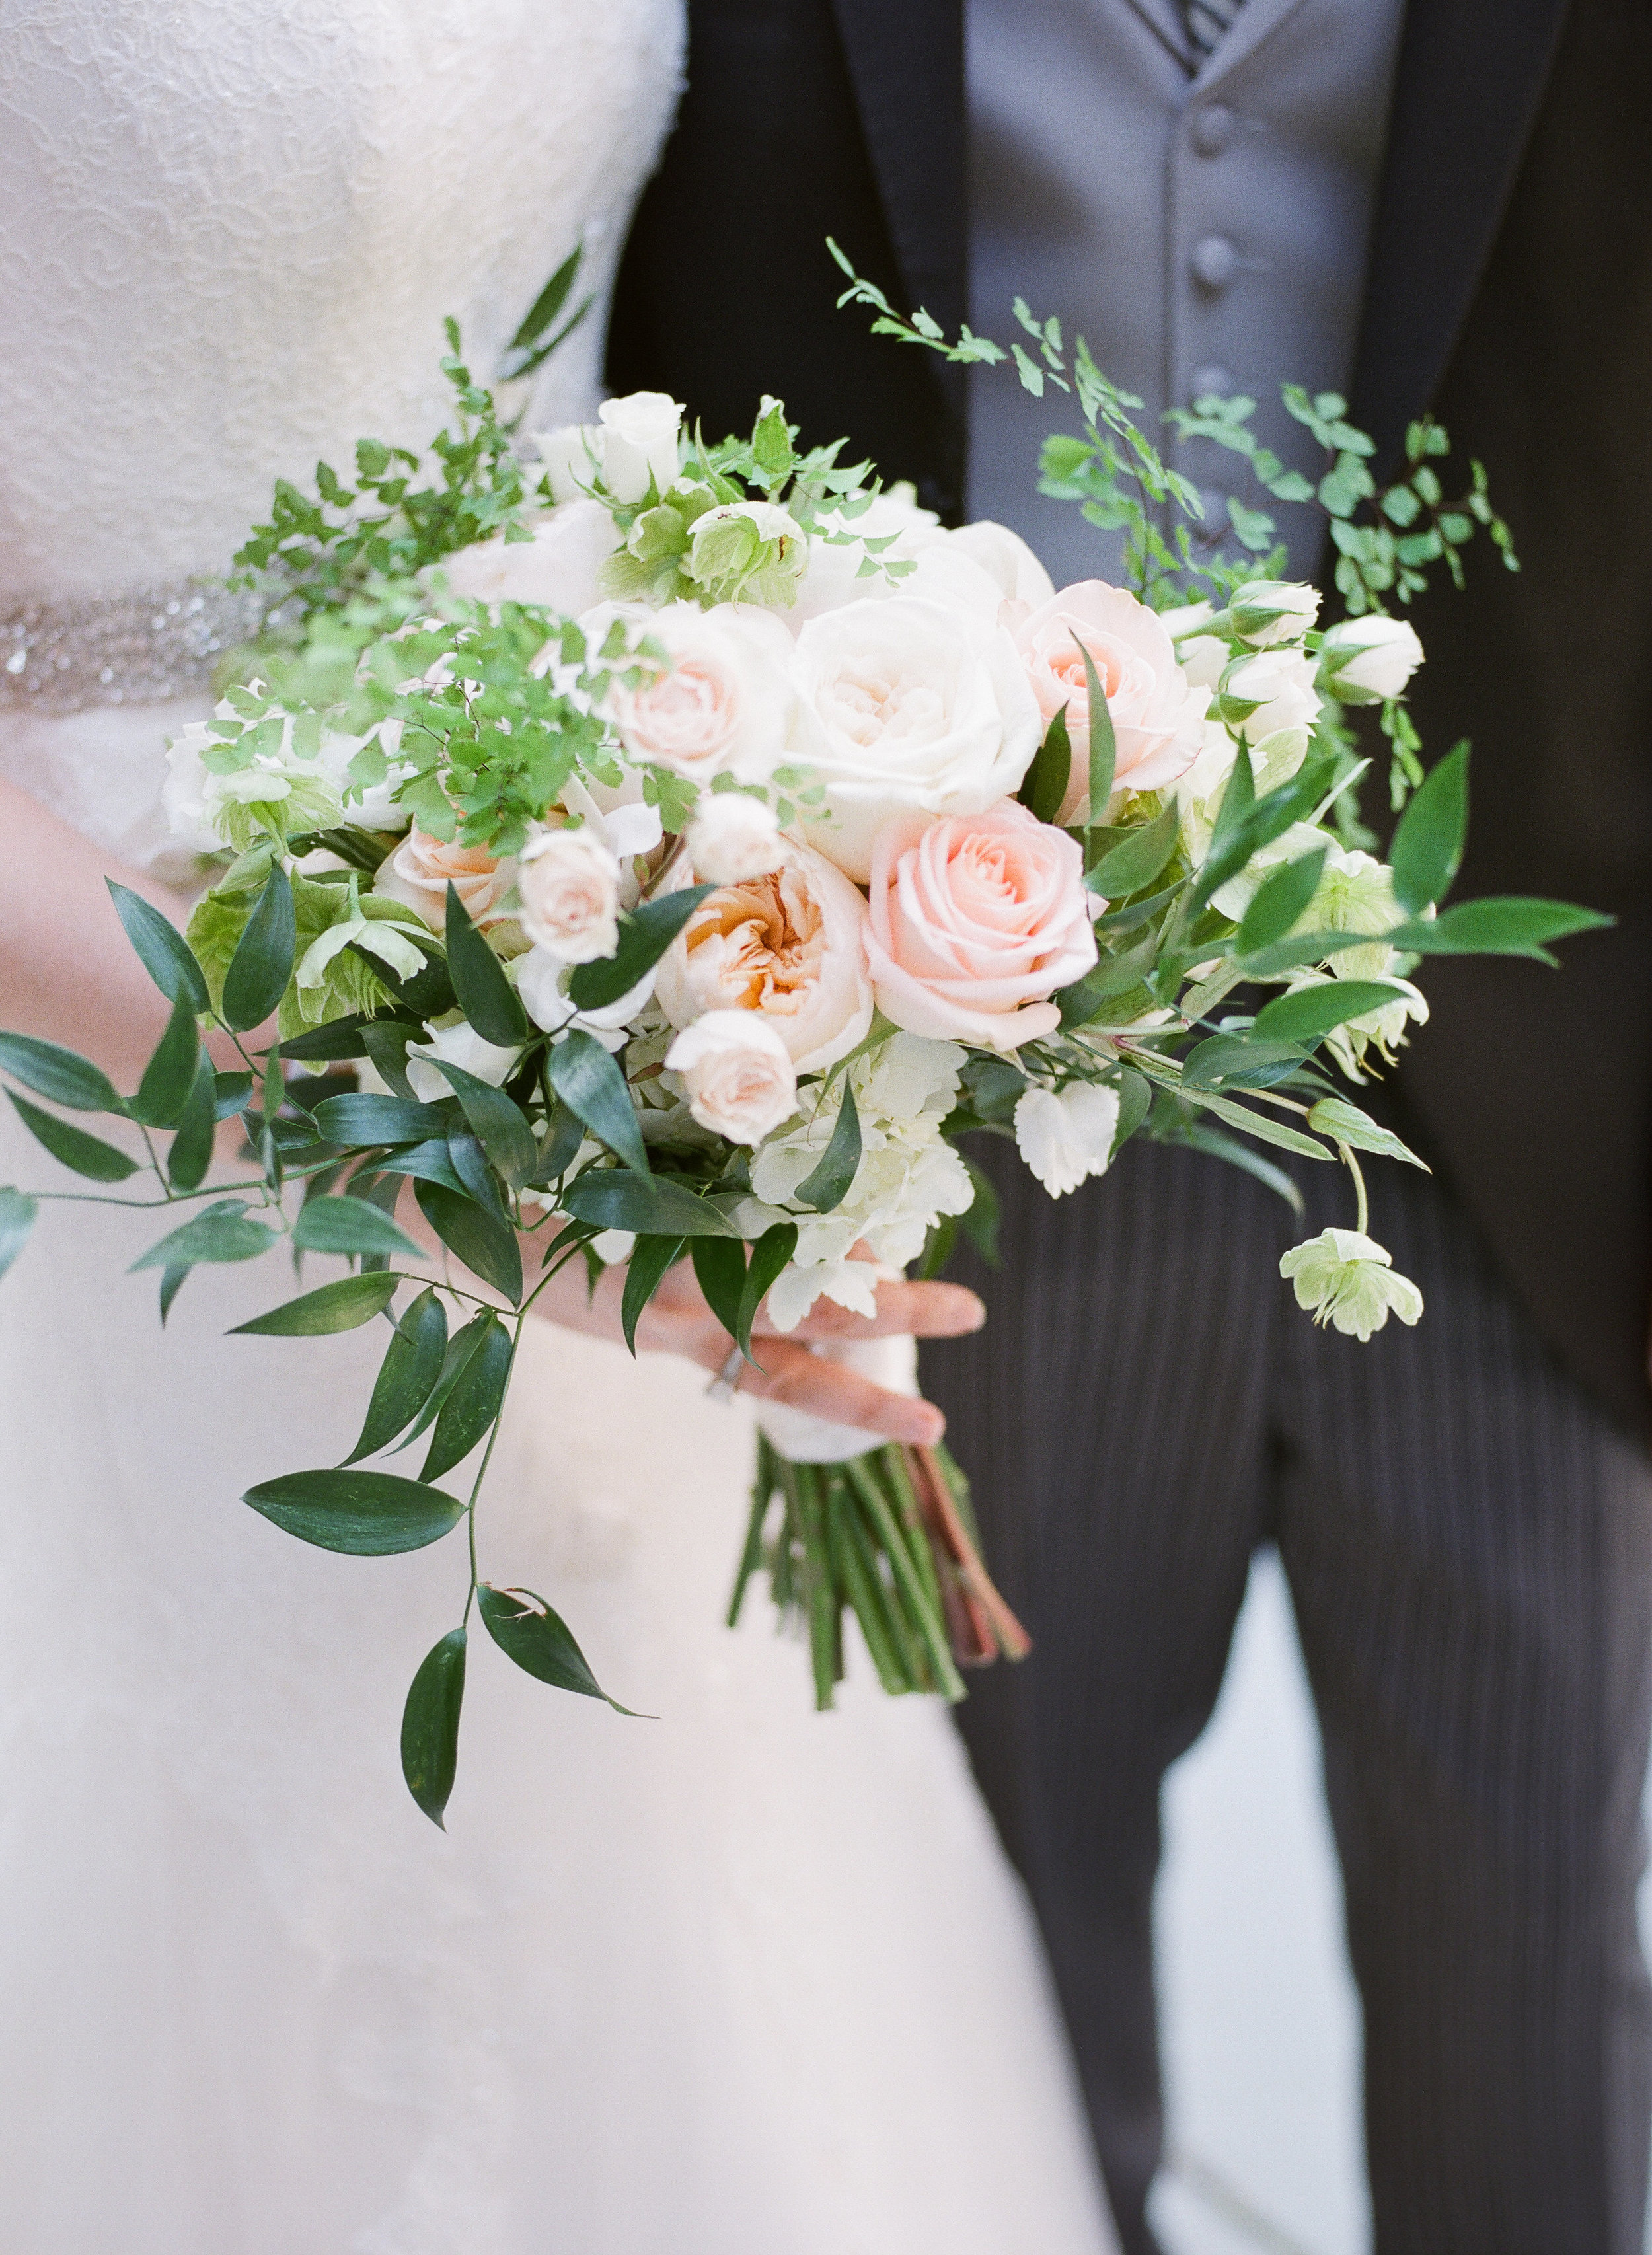 61455-chapelhillnctraditionalsouthernweddingbouquetchapelhillnctraditionalsouthernweddingbouquet.jpg